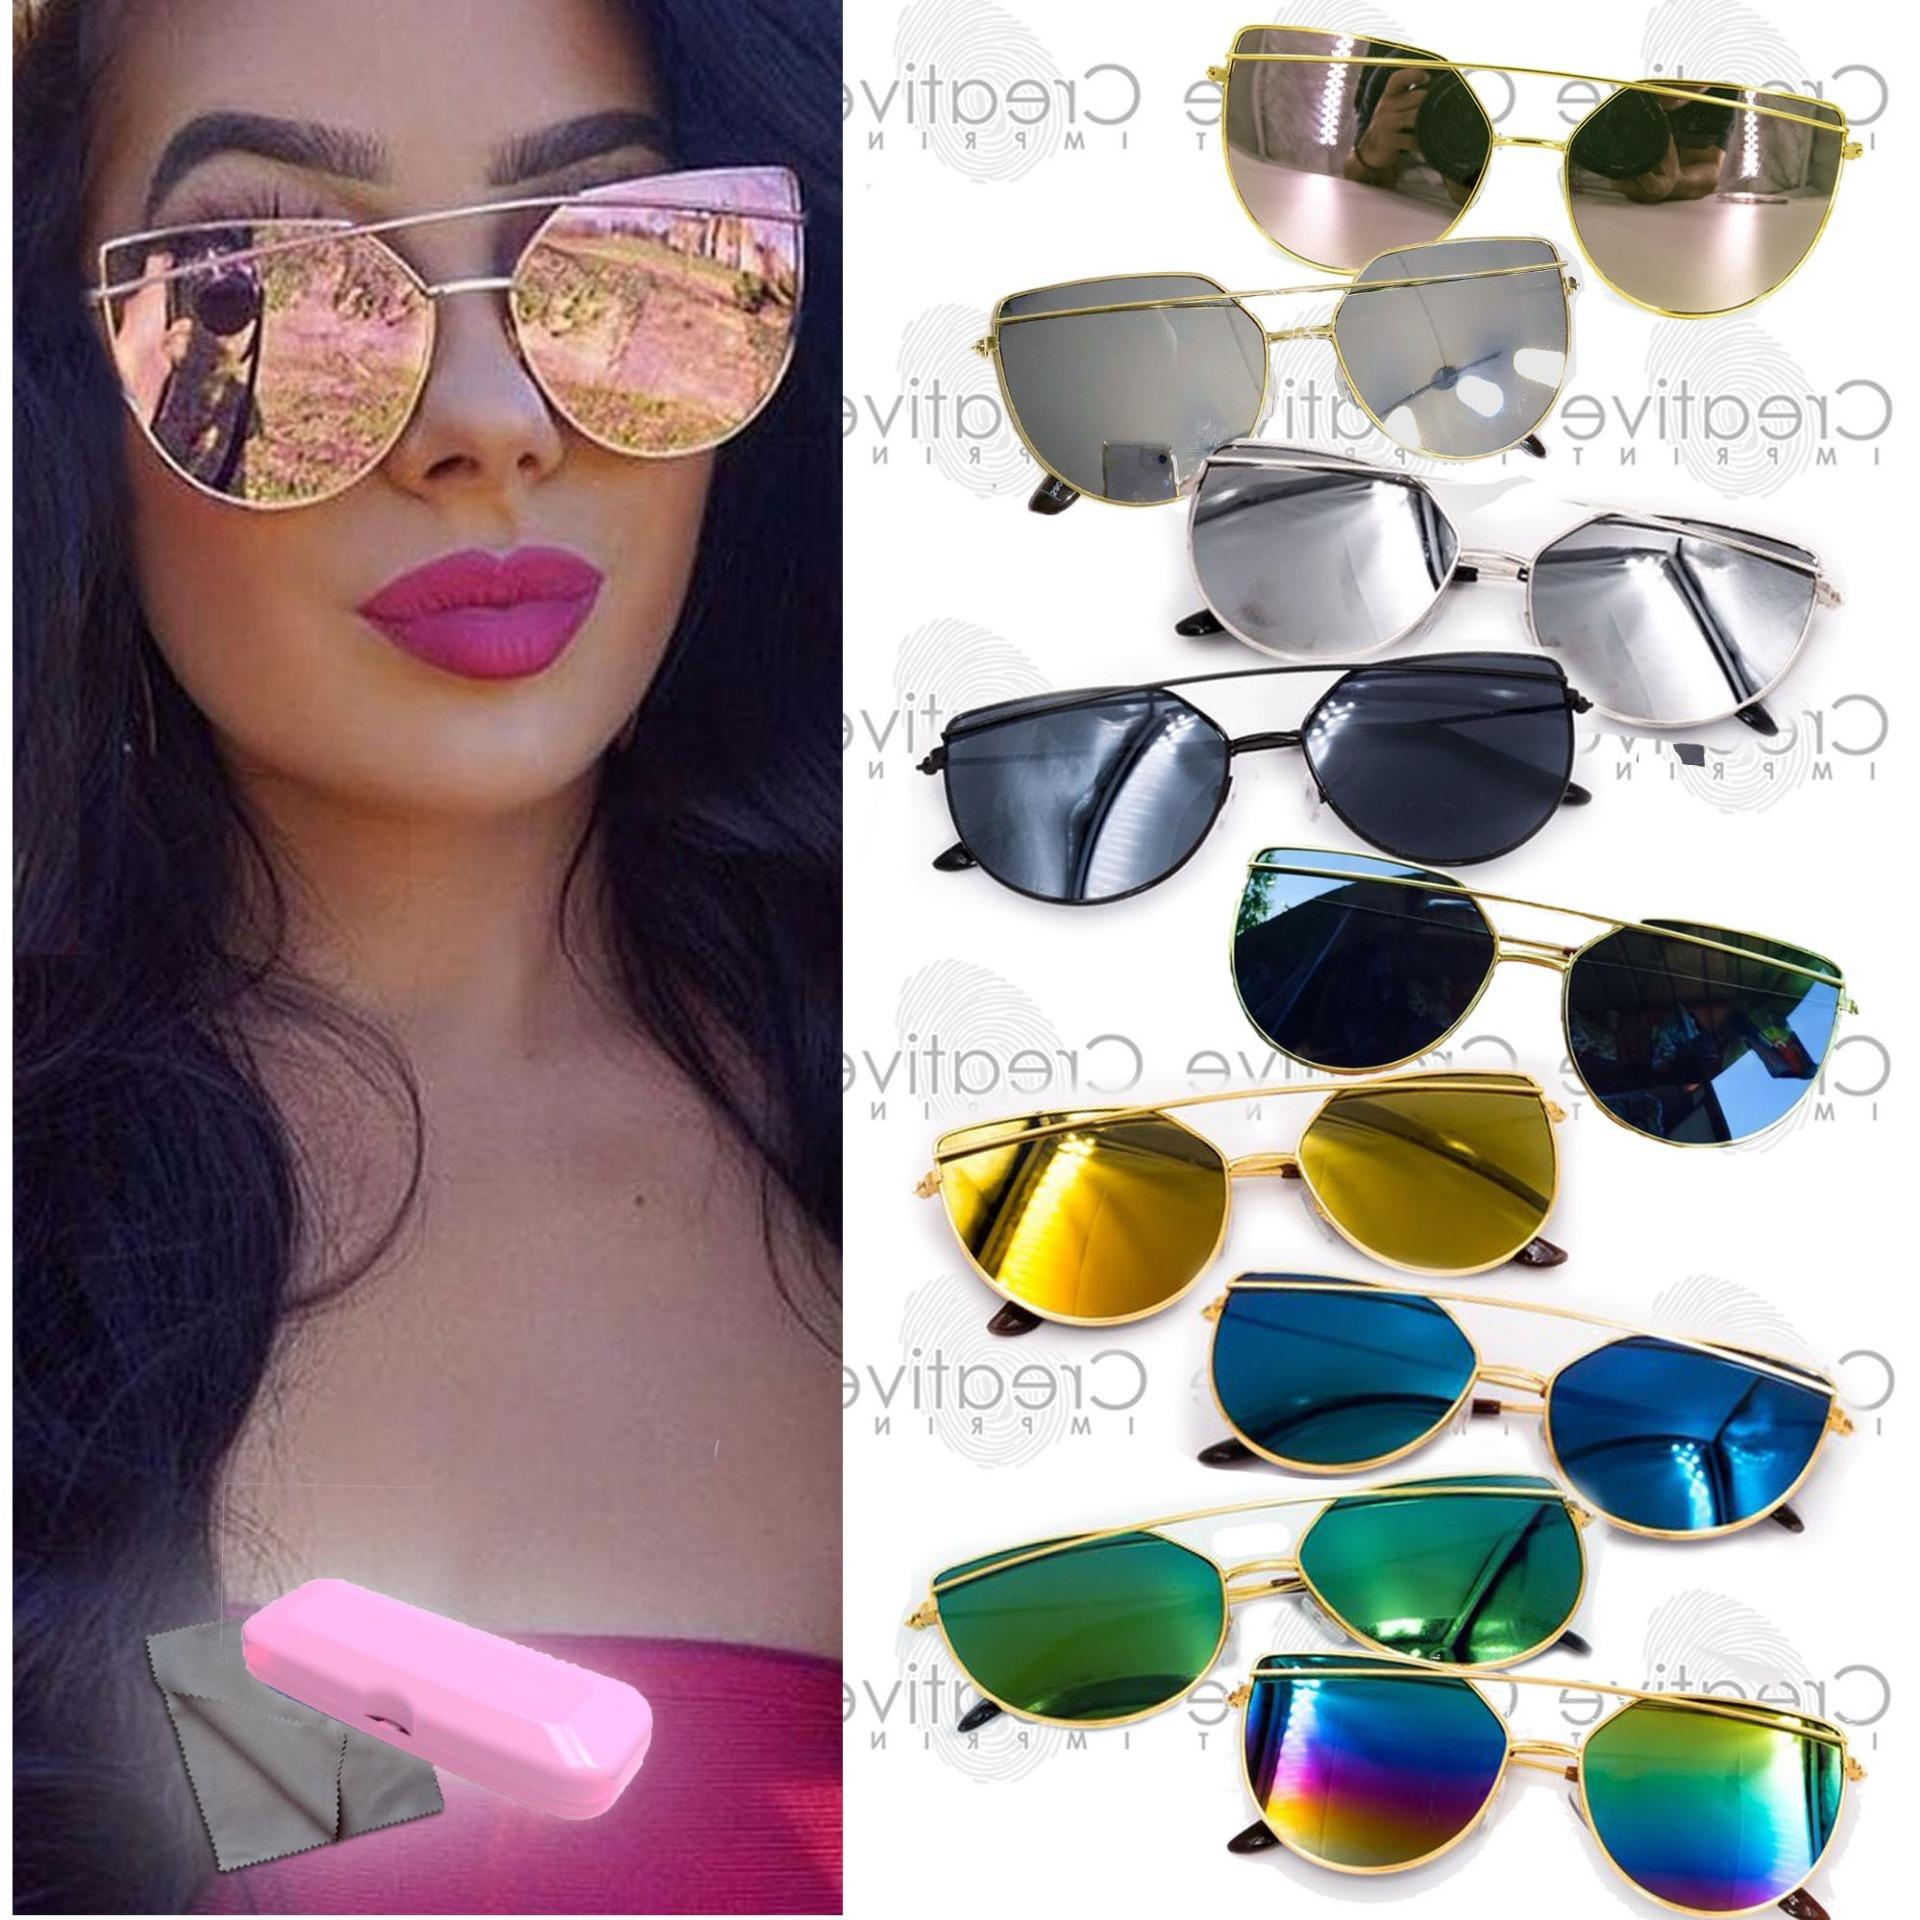 469b7d5cdae3a Double Bridge Cat Eye Flat Sunnies Sunglasses (FREE CASE WIPER) Shades  Light Metal Lens